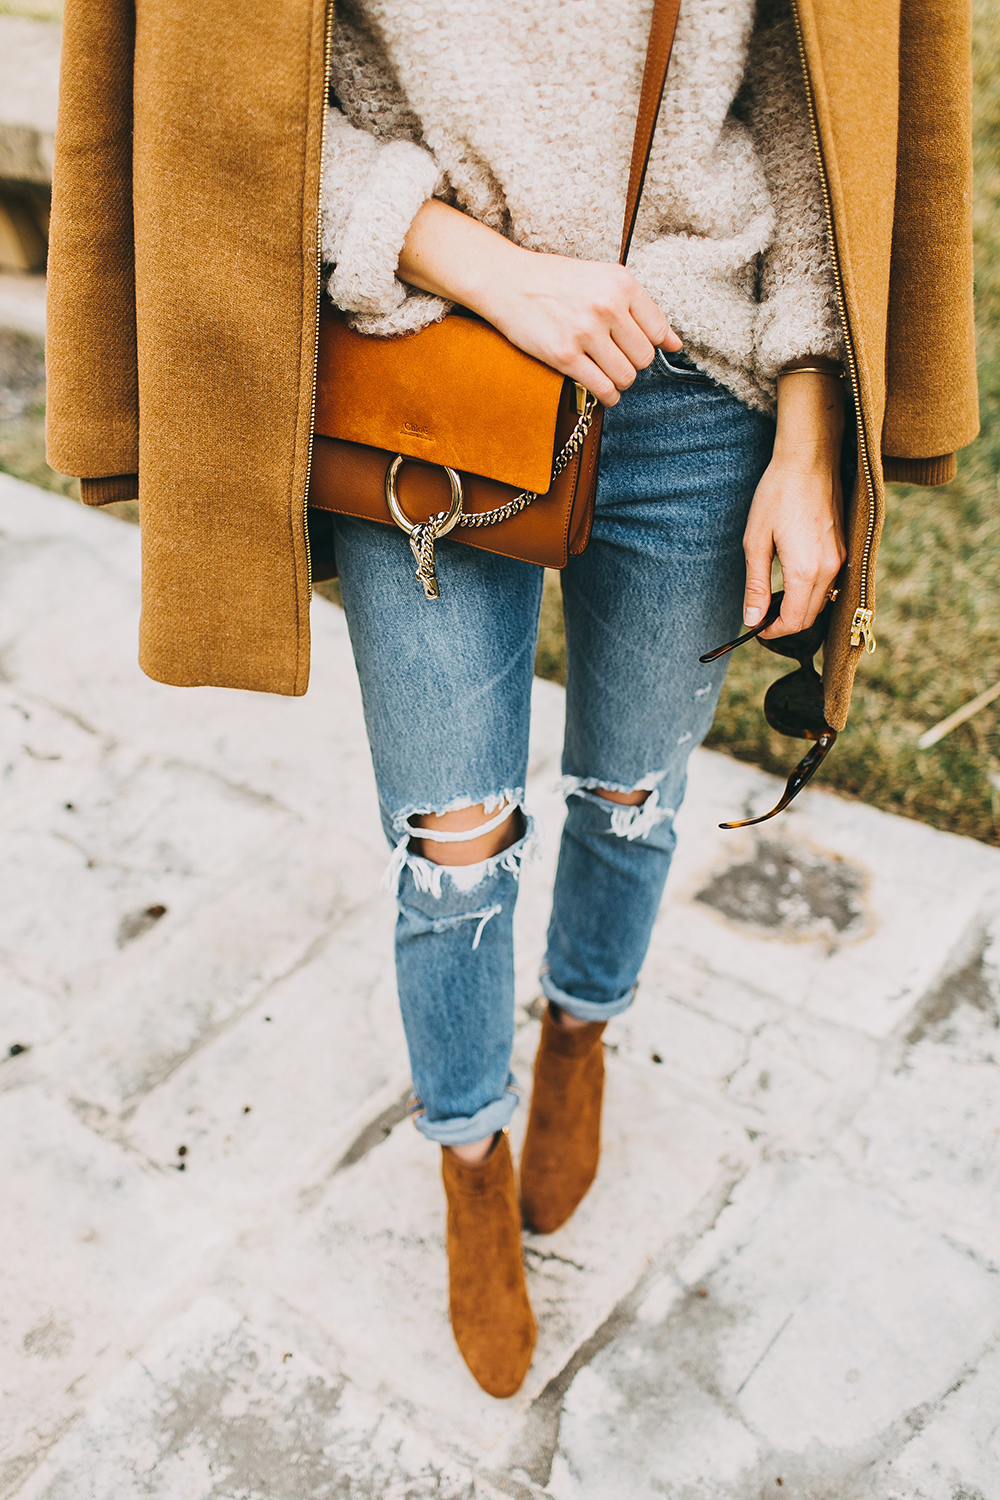 livvyland-blog-olivia-watson-austin-texas-fashion-style-blogger-free-people-oatmeal-knit-sweater-j-crew-camel-coat-chloe-faye-tobacco-handbag-5